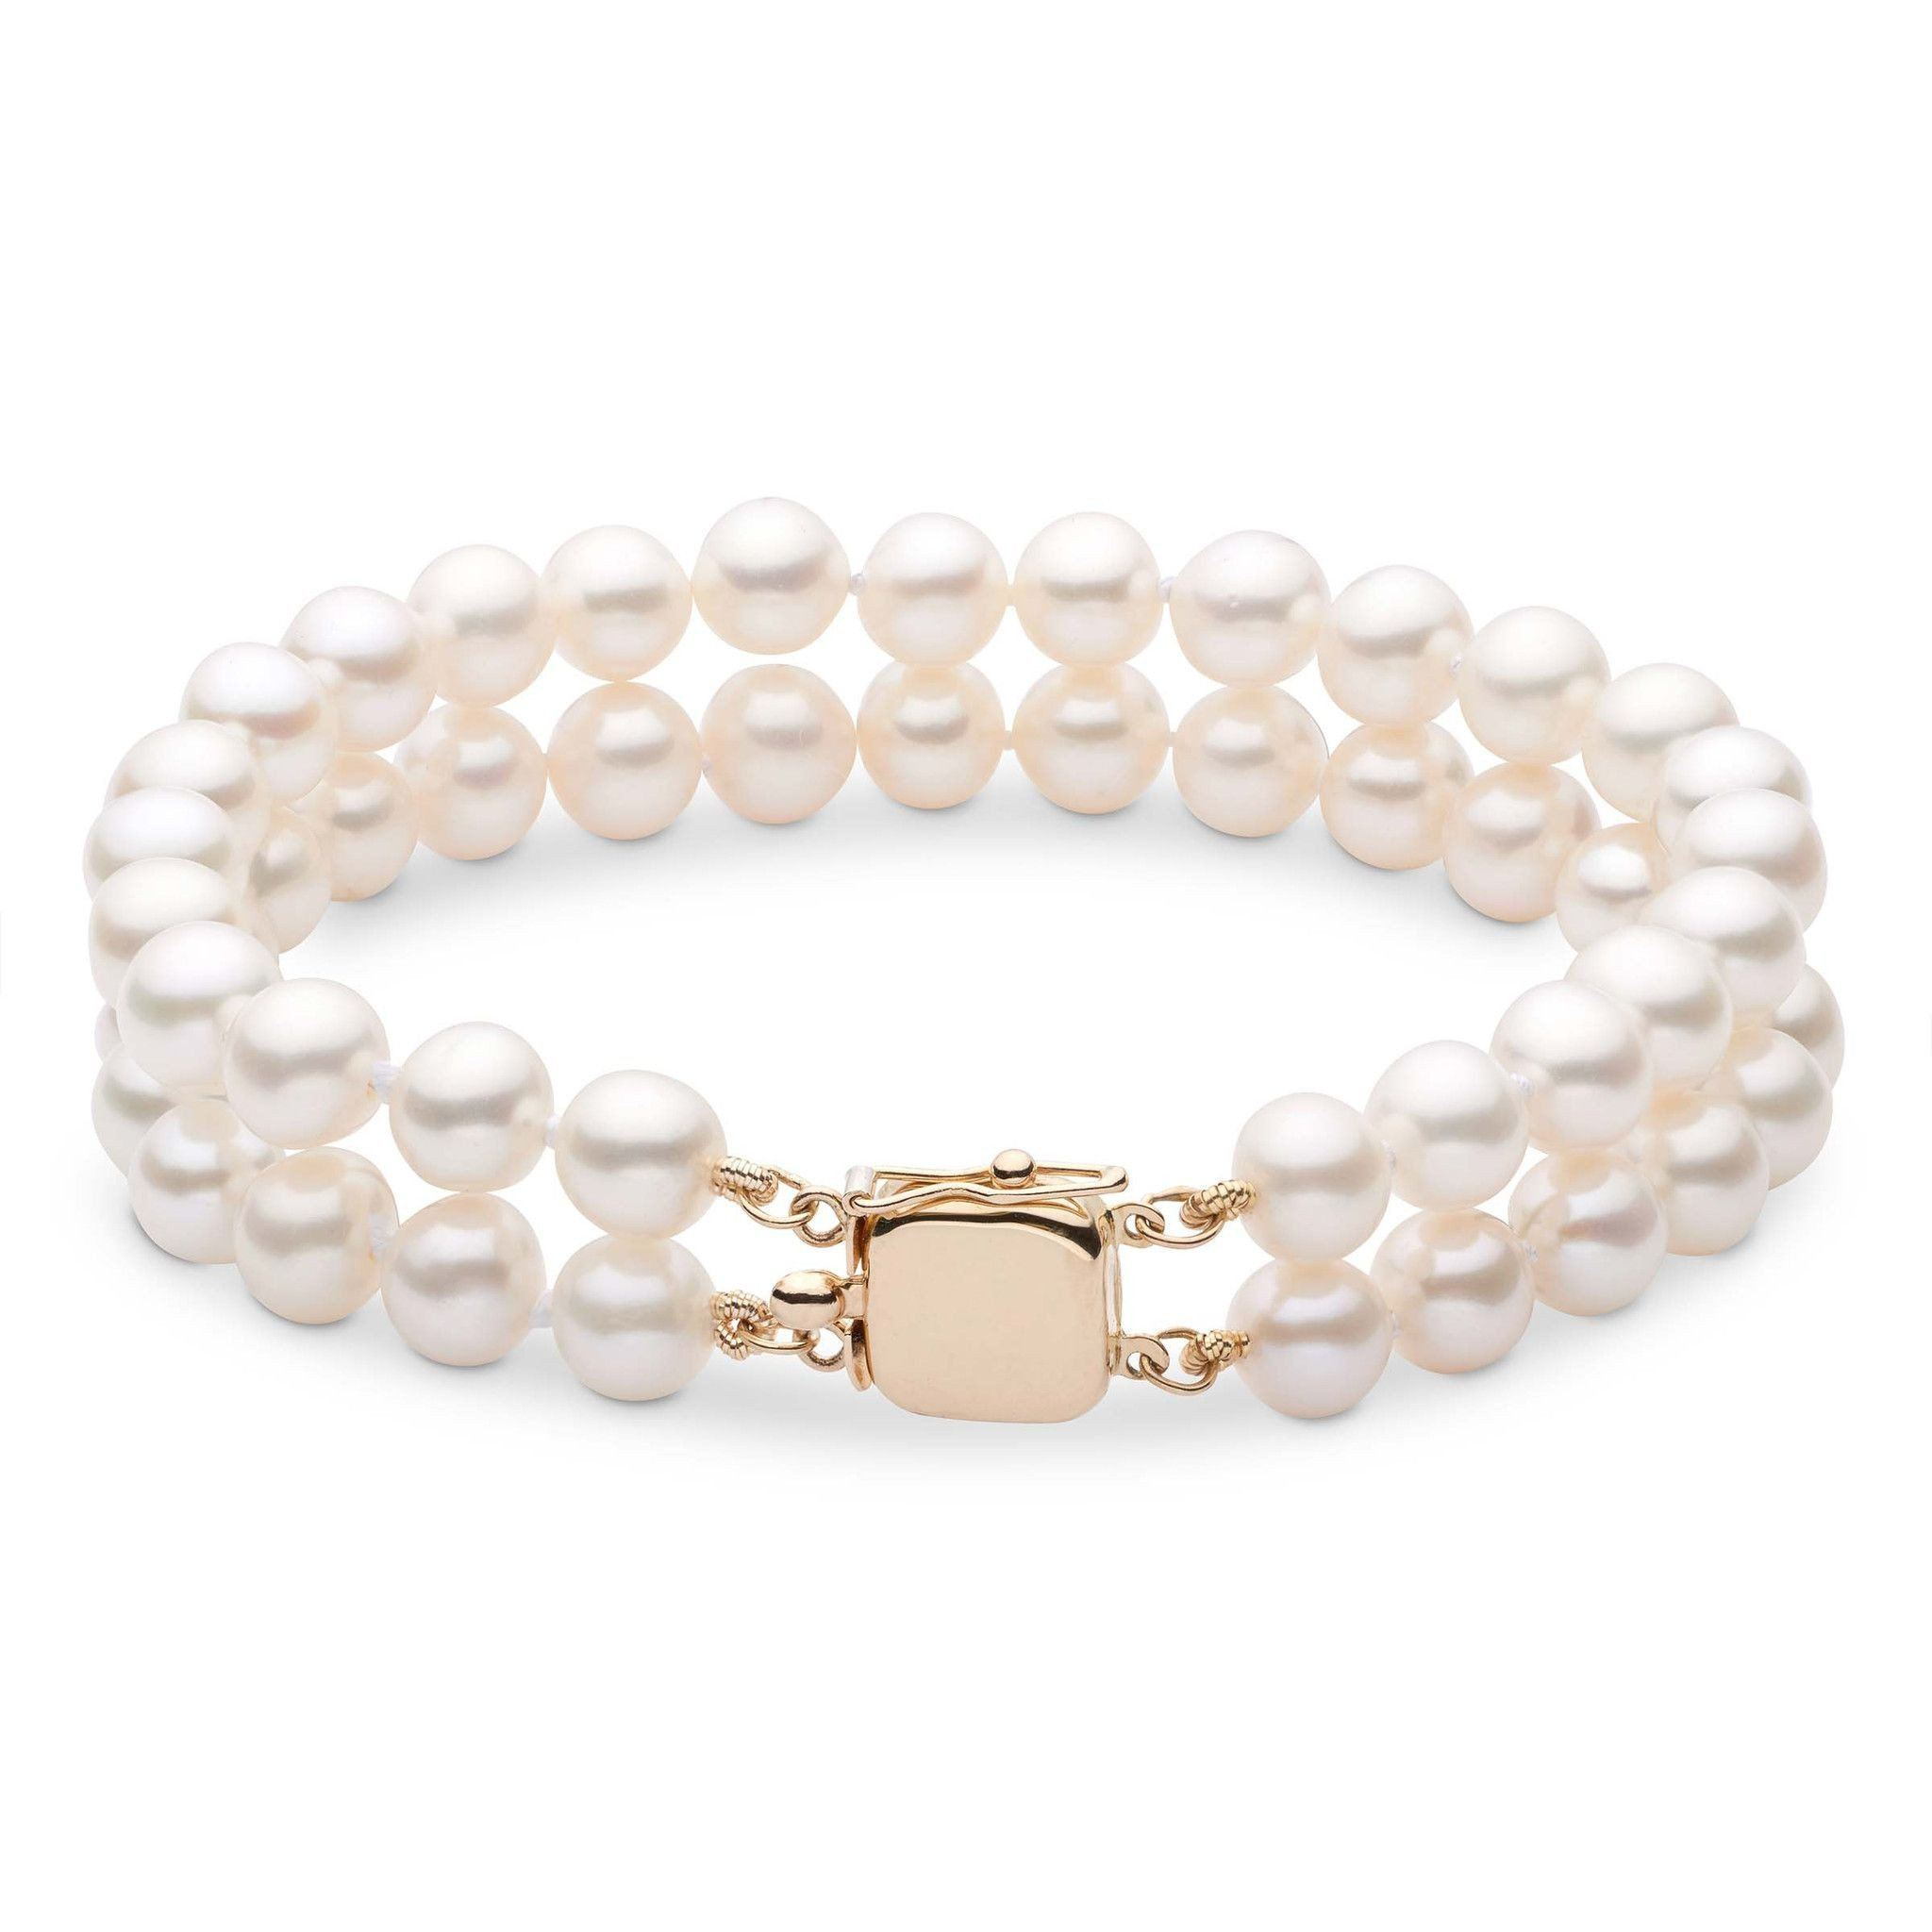 7.5-8.0 mm White Freshwater AA+ Pearl Double Strand Bracelet